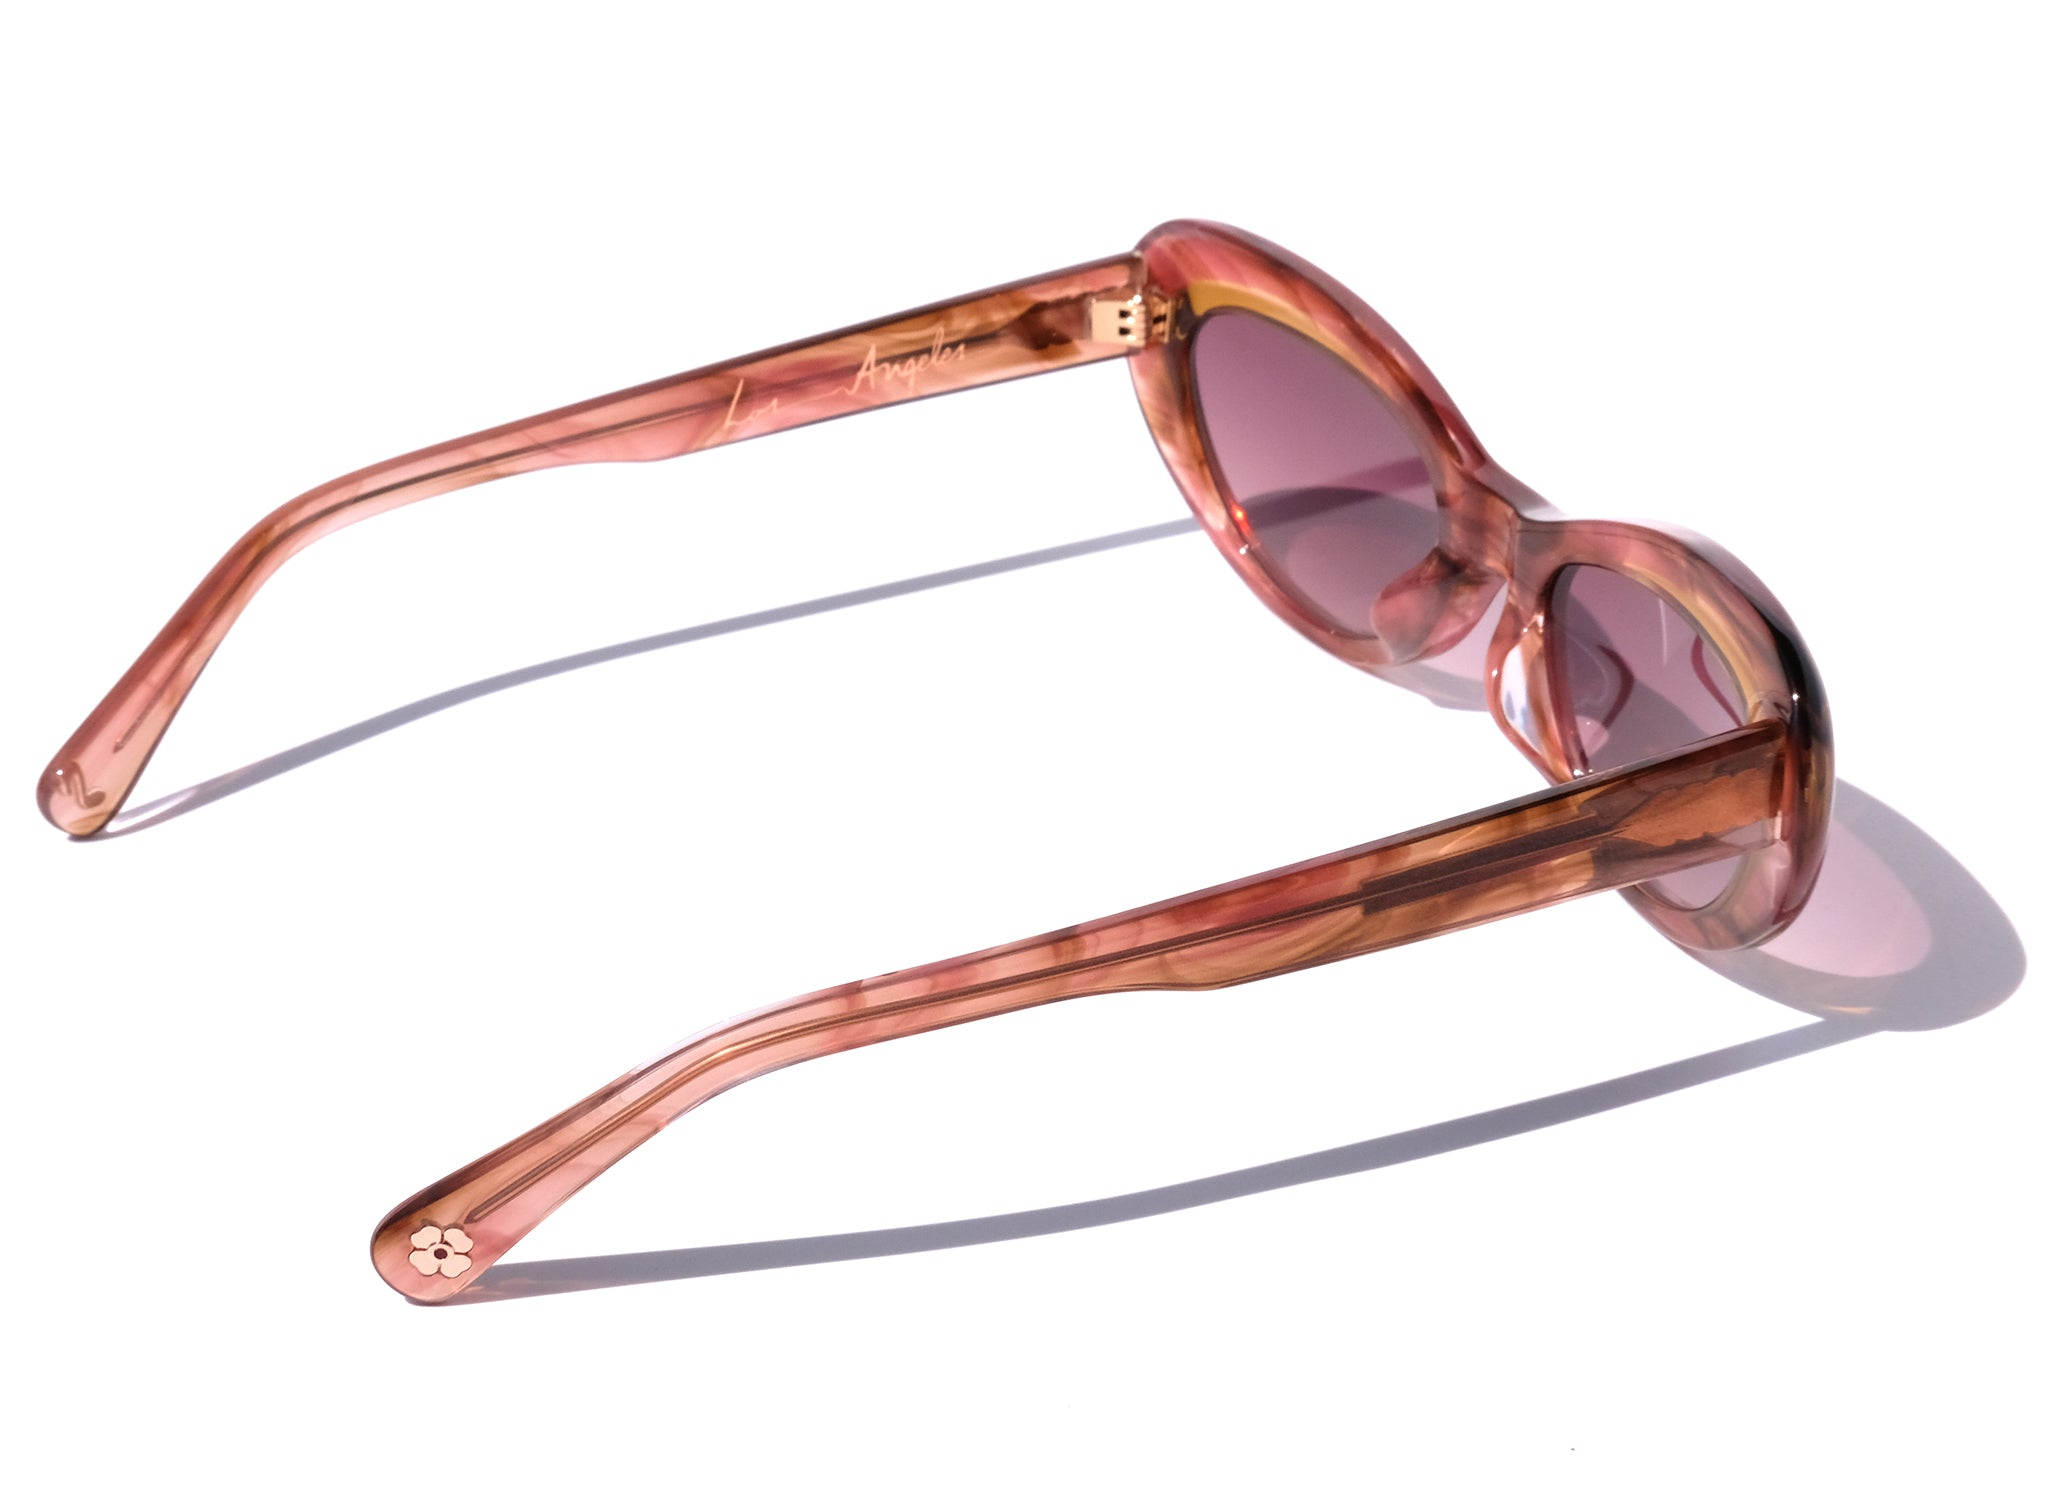 OCEANA IN HONEY SUNSET, PINK CAT EYE SUNGLASSES